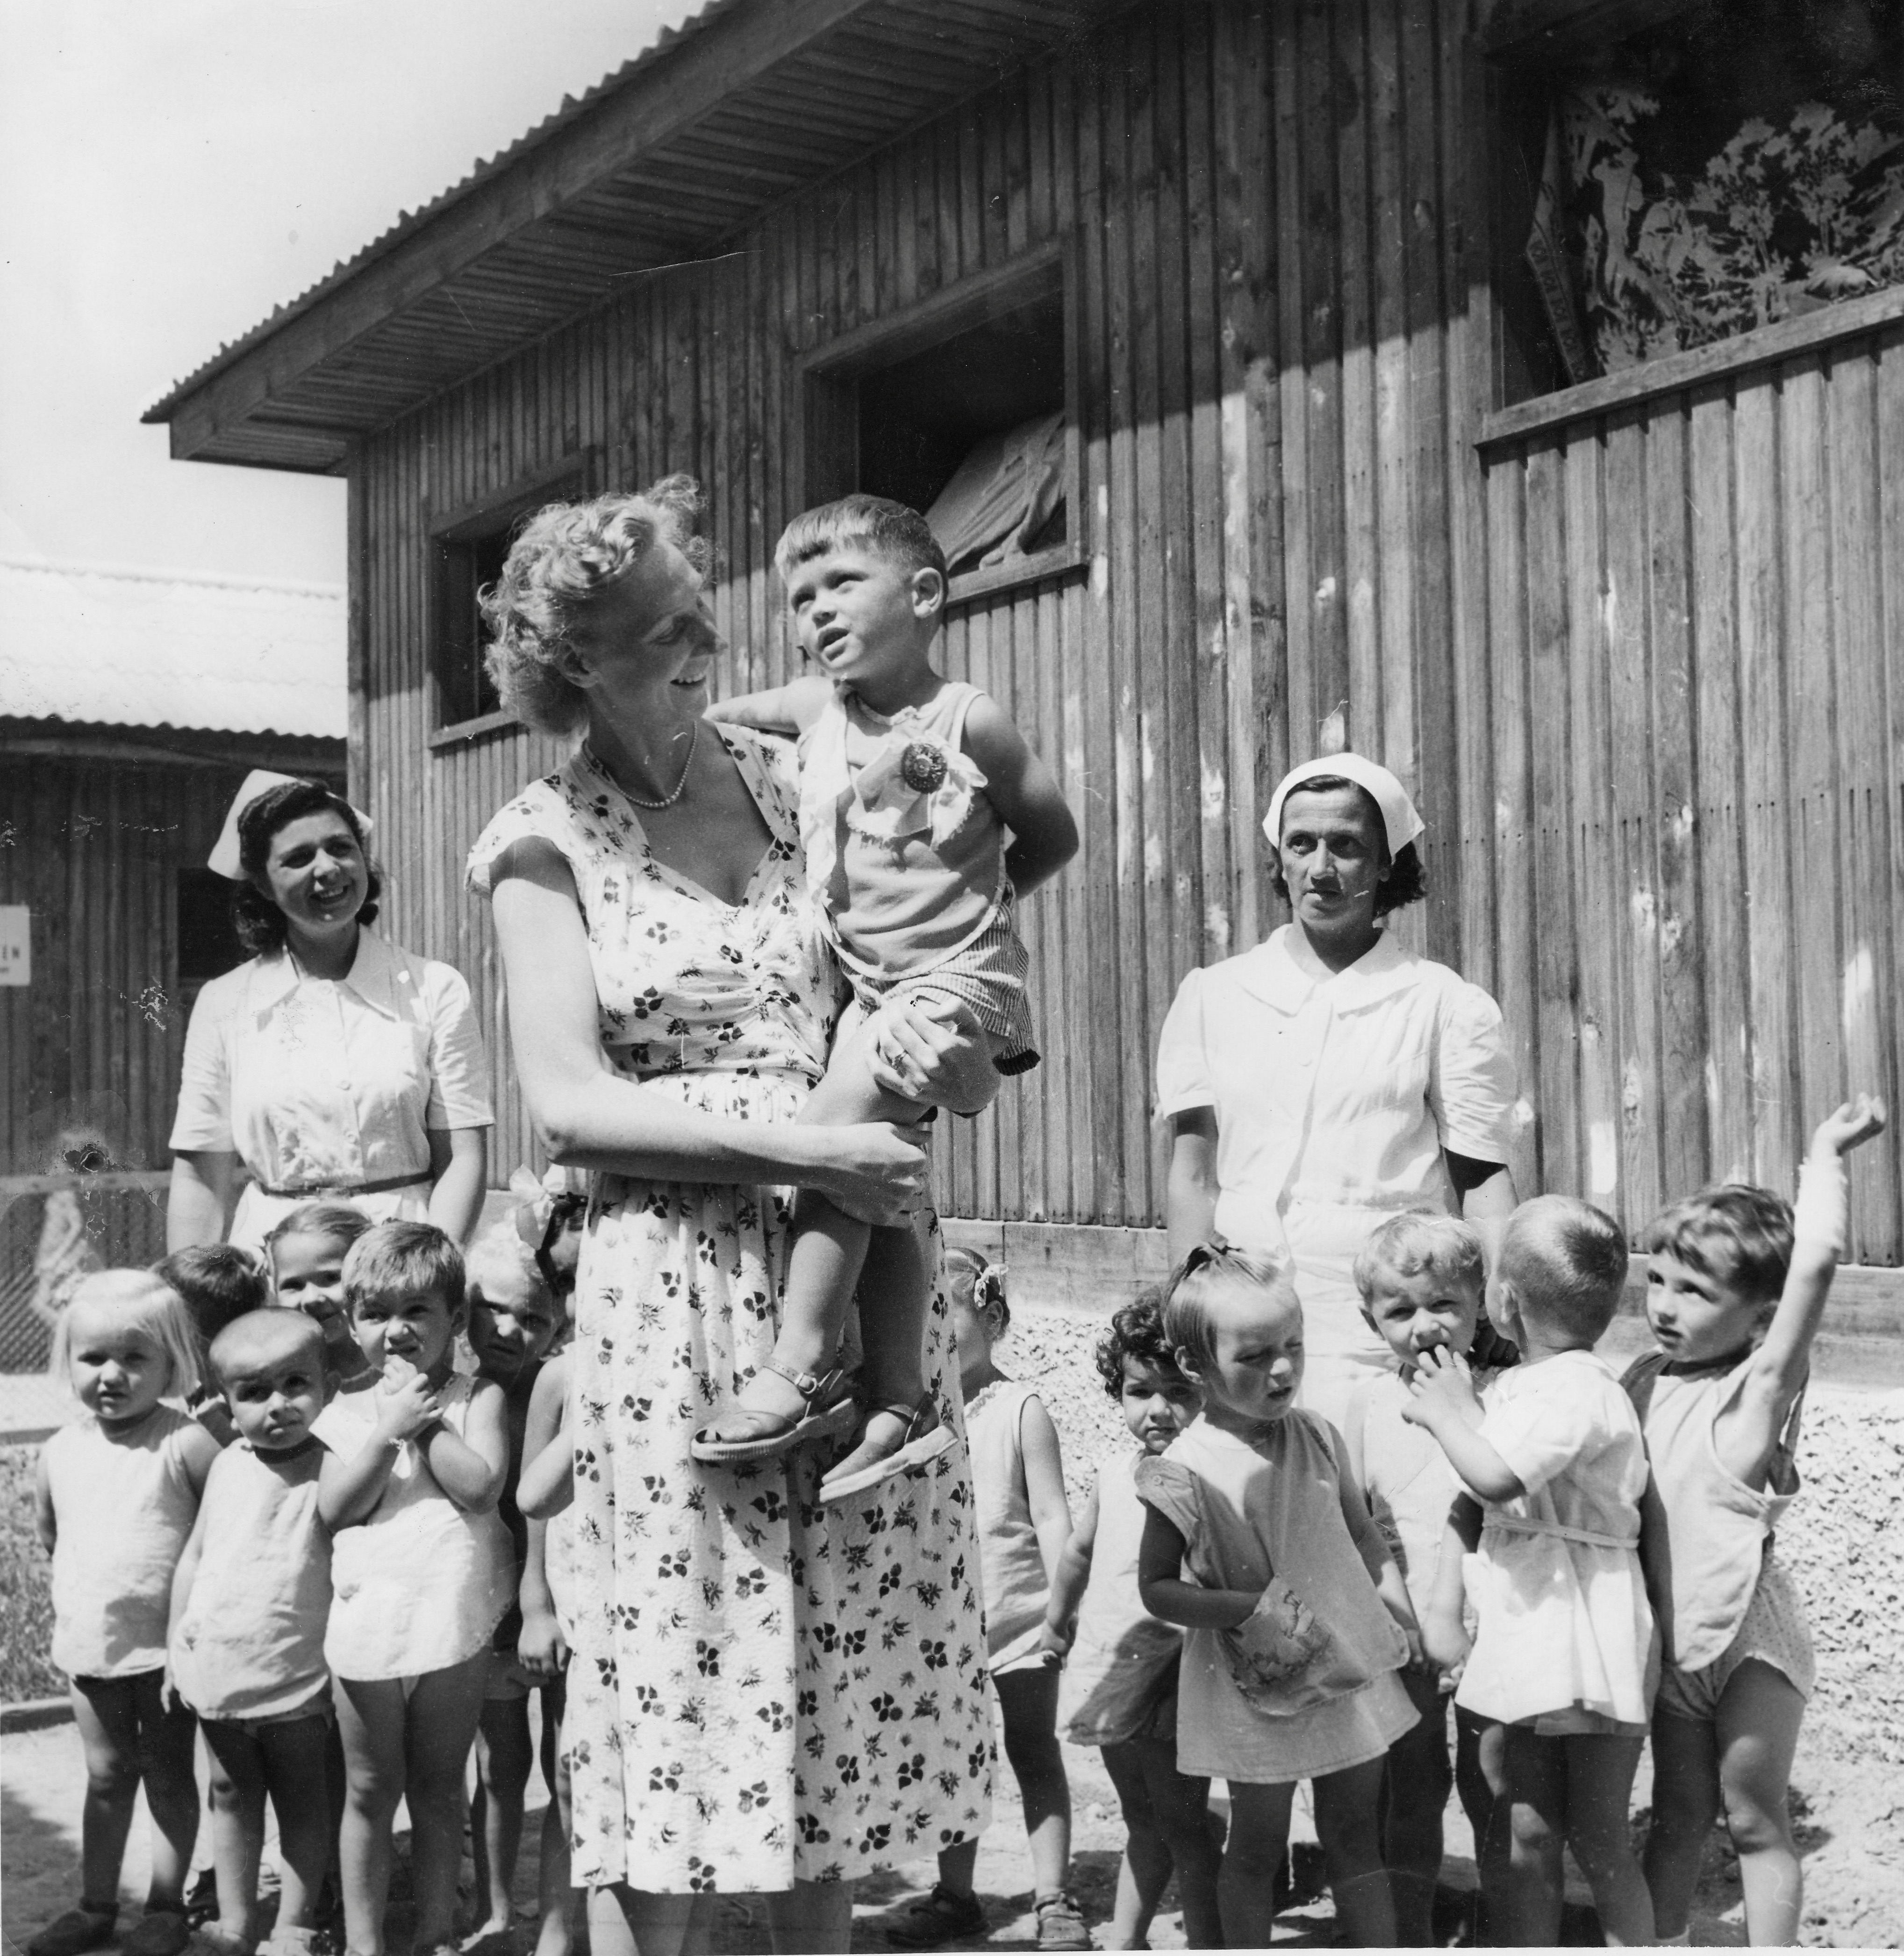 Clare McMurray with children, Trieste 1951